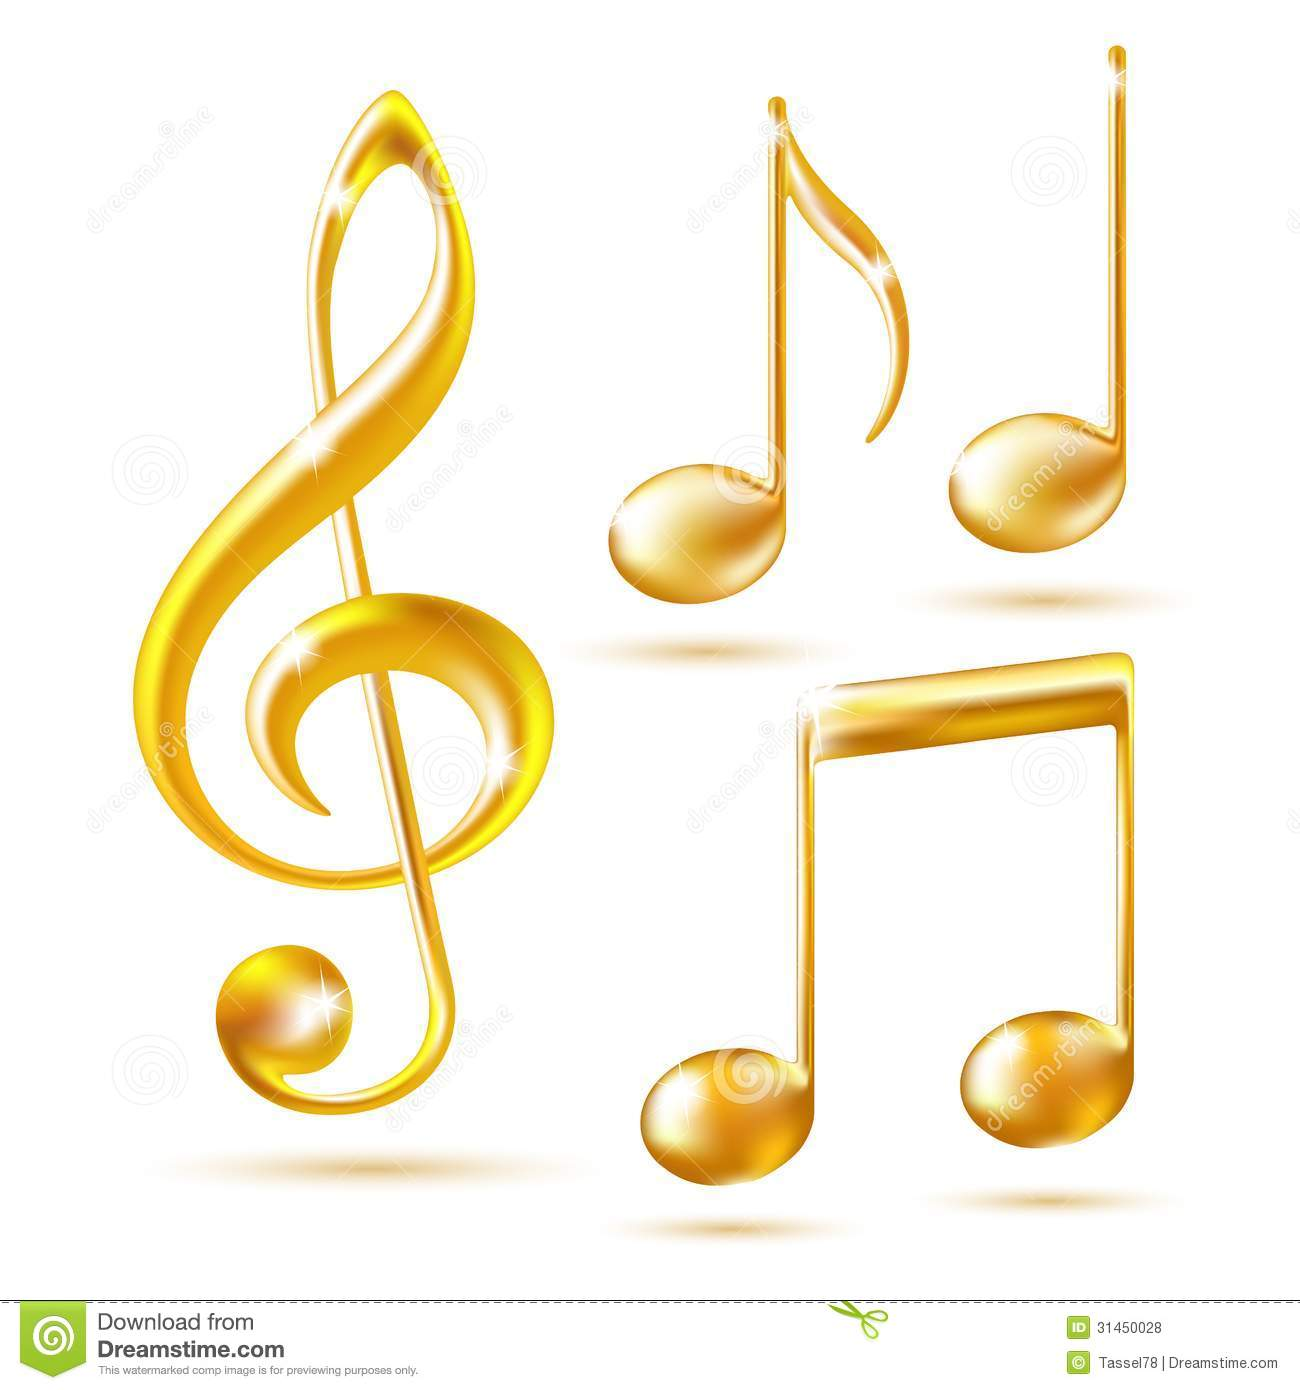 Musical notes staff background on white vector by tassel78 image - Gold Icons Of A Treble Clef And Music Notes Royalty Free Stock Photos